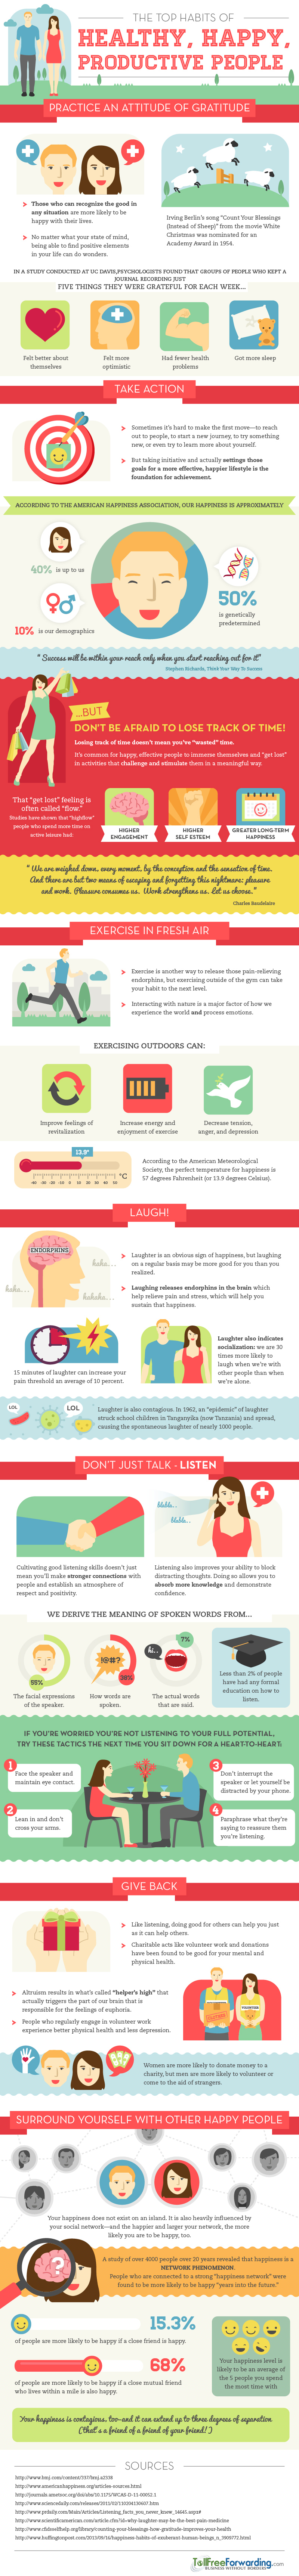 The Top Habits of Healthy, Happy, Productive People [Infographic]